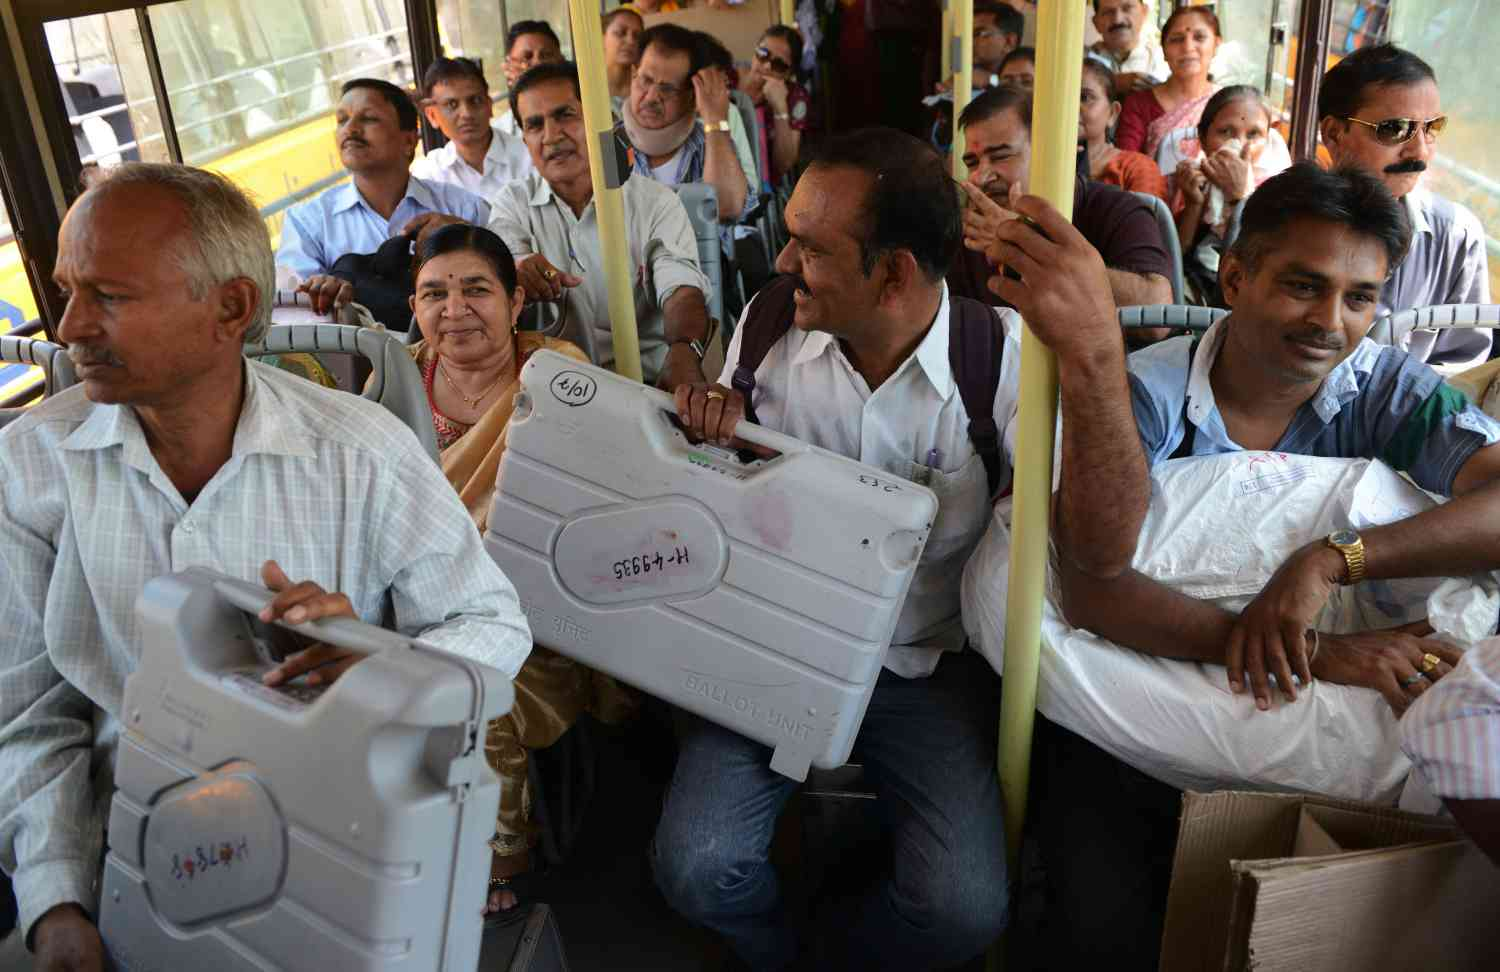 Election officials hold their Electronic Voting Machines as they sit in a bus on their way to various polling stations from a distribution centre in Ahmedabad on April 29, 2014. (Photo credit: AFP/Sam Panthaky).